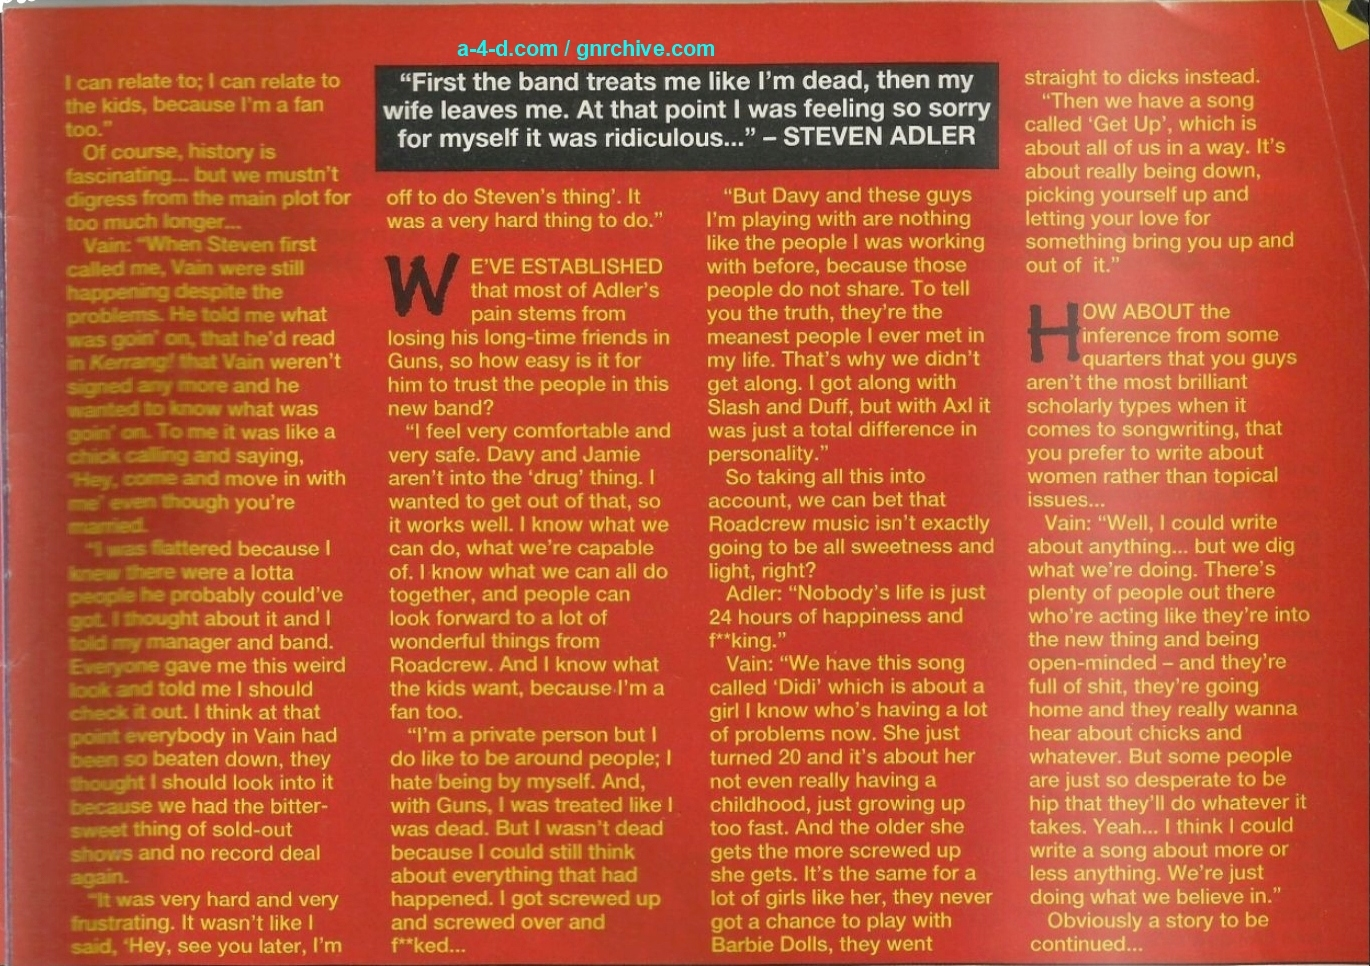 1991.11.09 - Kerrang! - We Are The Roadcrew! (Steven) 1991_135